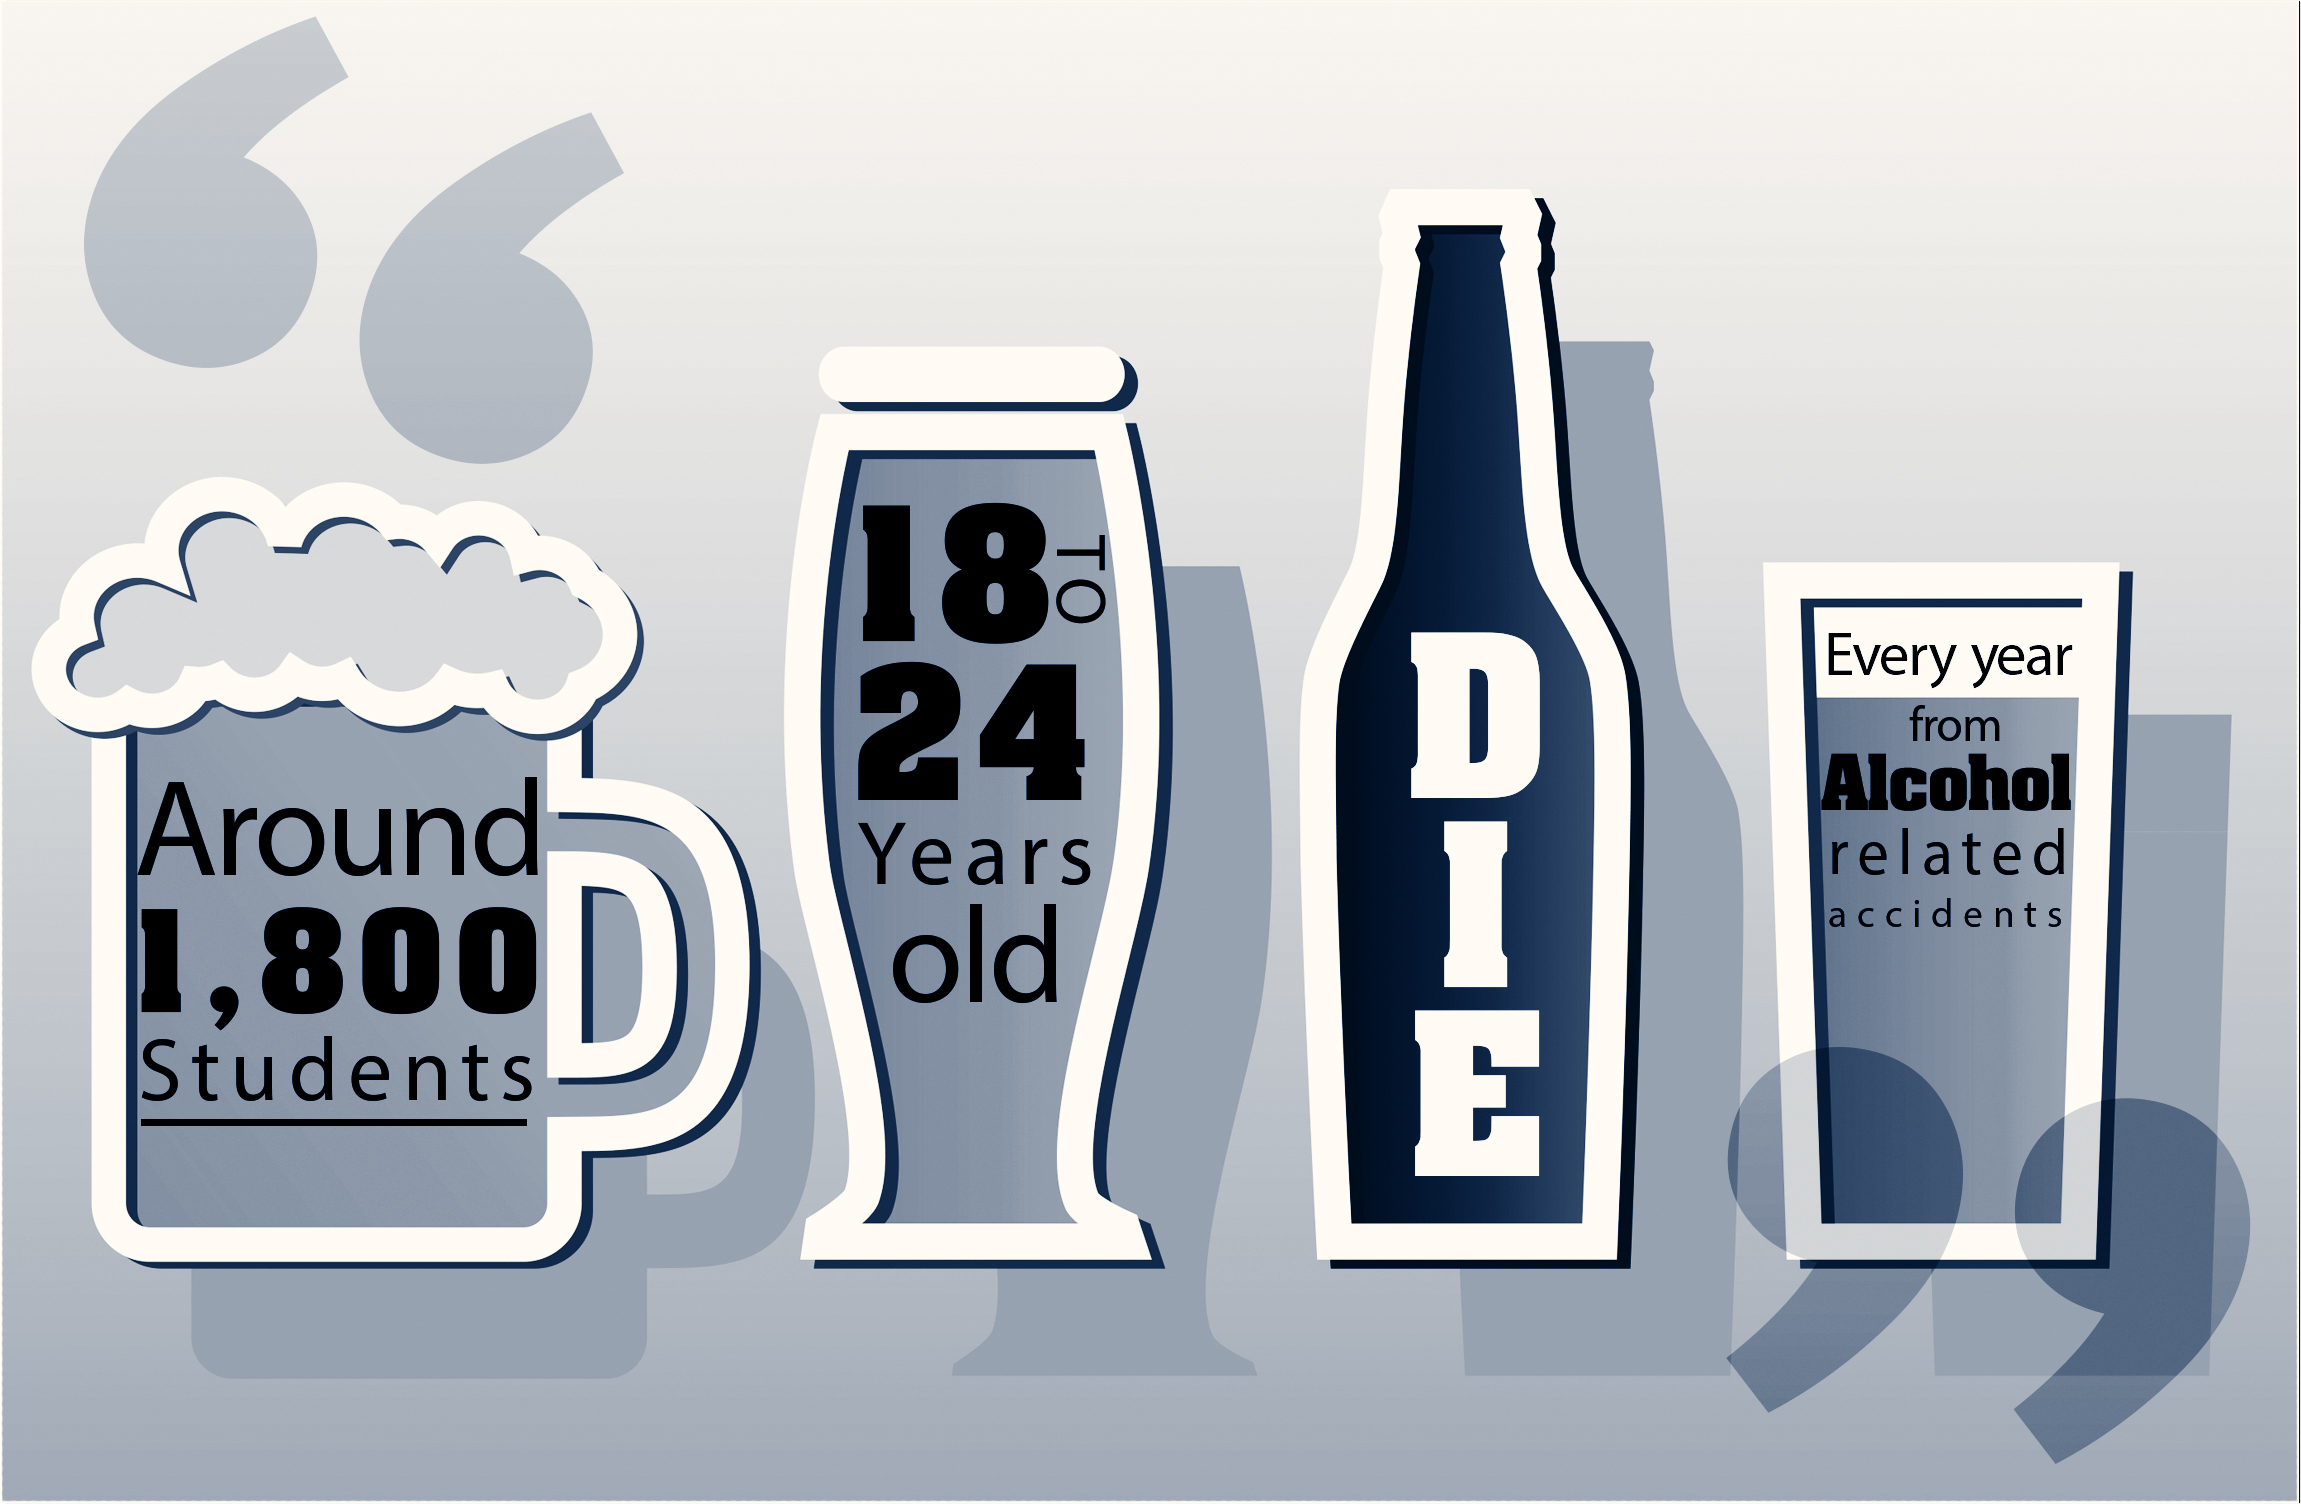 binge in college essay Place an order for a custom essay, research paper on this or related subject the number of college students engaging in binge drinking is a matter of growing concern binge drinking has been associated with poor school performance, prolonged alcohol misuse, and problems with the family.